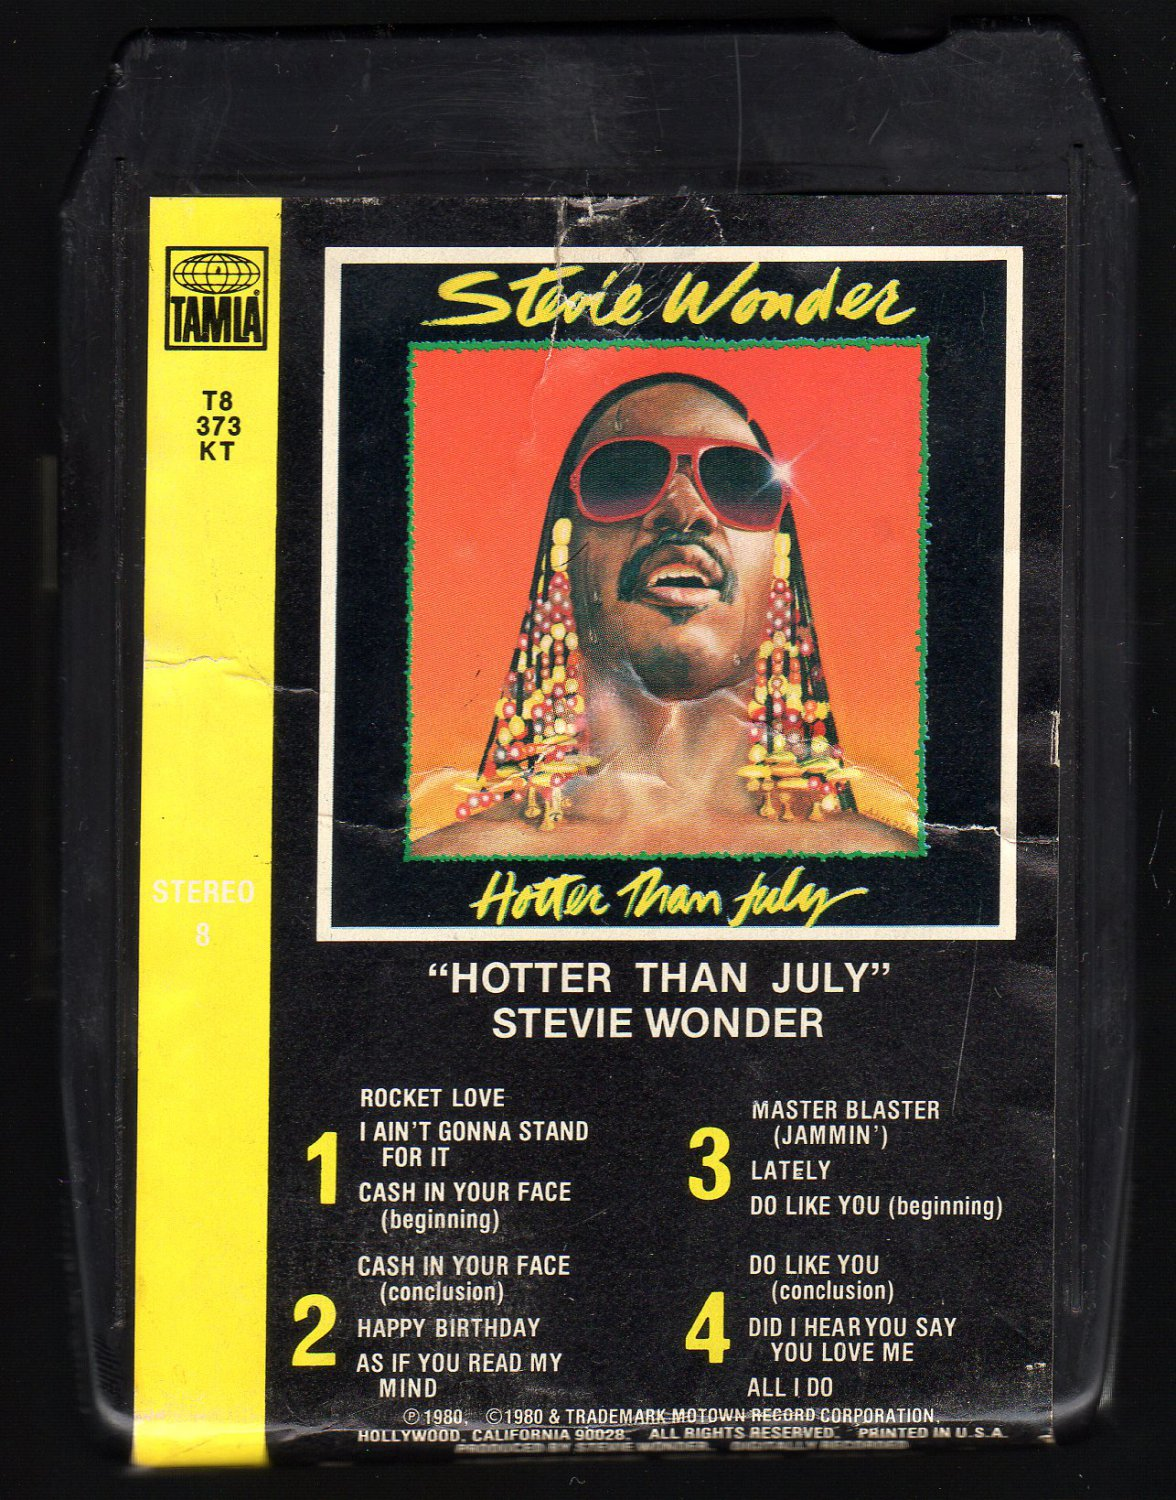 Stevie Wonder - Hotter Than July 1980 TAMLA MOTOWN A23 8-TRACK TAPE